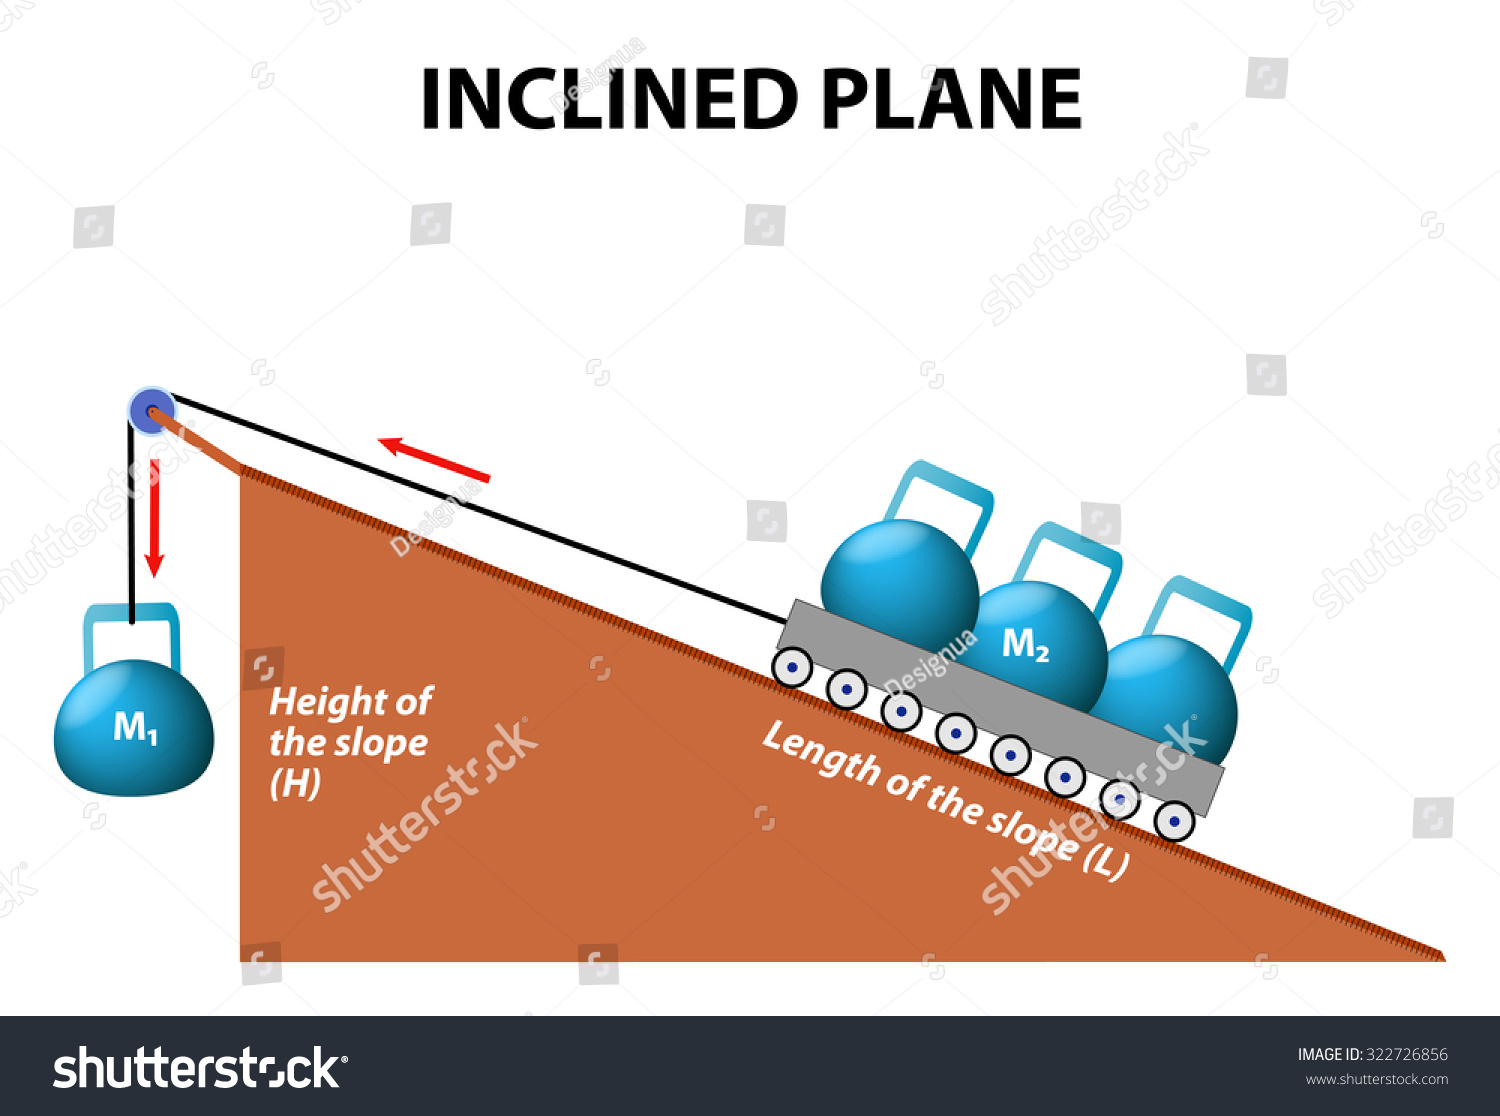 inclined plane simple machine uses inclined plane simple machines plane simple machines stock illustration 322726856